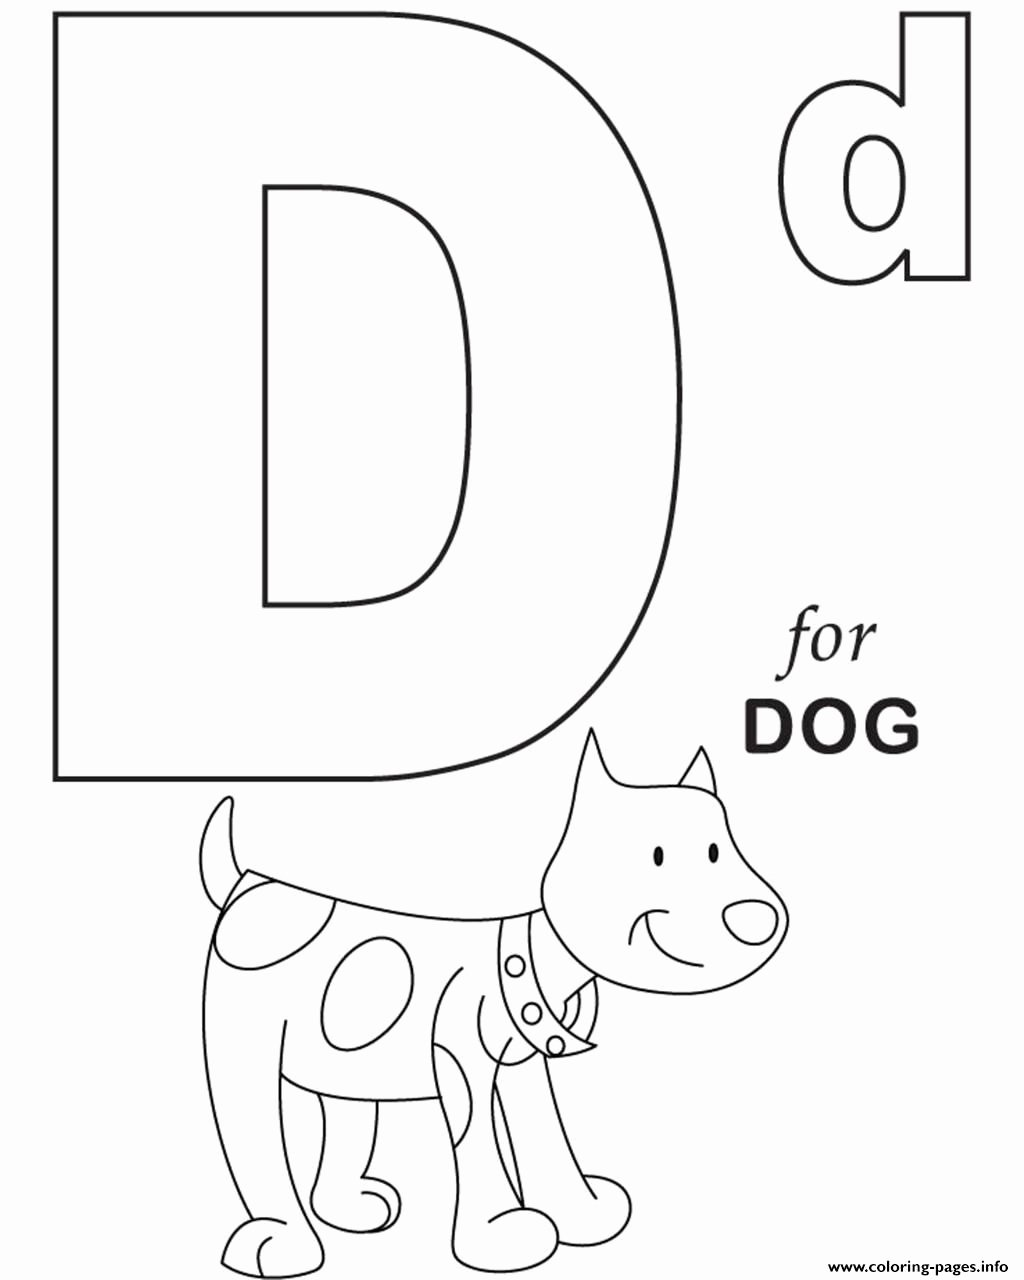 d for dog printable alphabet s29a7c coloring pages printable 2